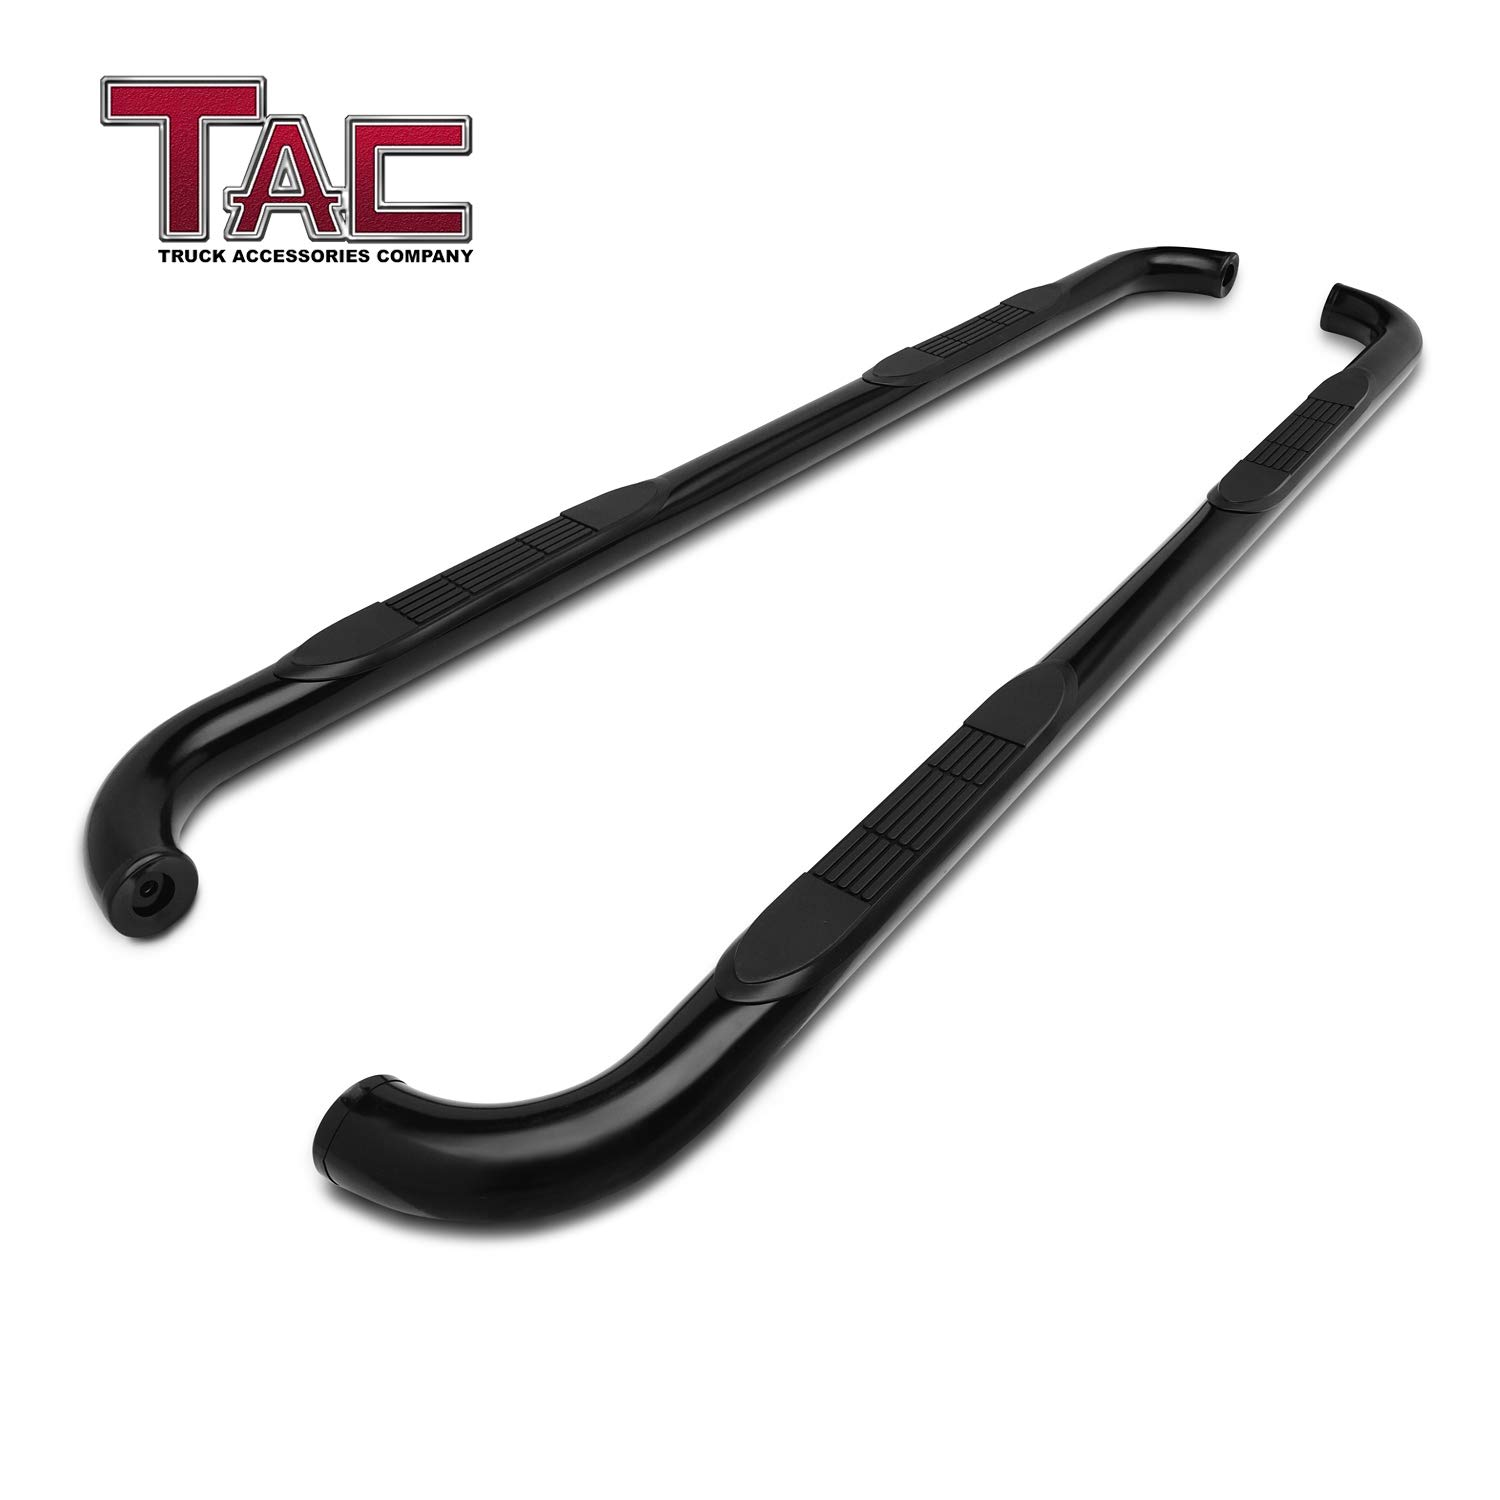 TAC Side Steps Running Boards Fit 2019 Chevy Silverado 1500 Double Cab / 2019 GMC Sierra 1500 Double Cab Truck Pickup 3'' Black Side Bars Step Rails Nerf Bars Off Road Accessories 2 pcs